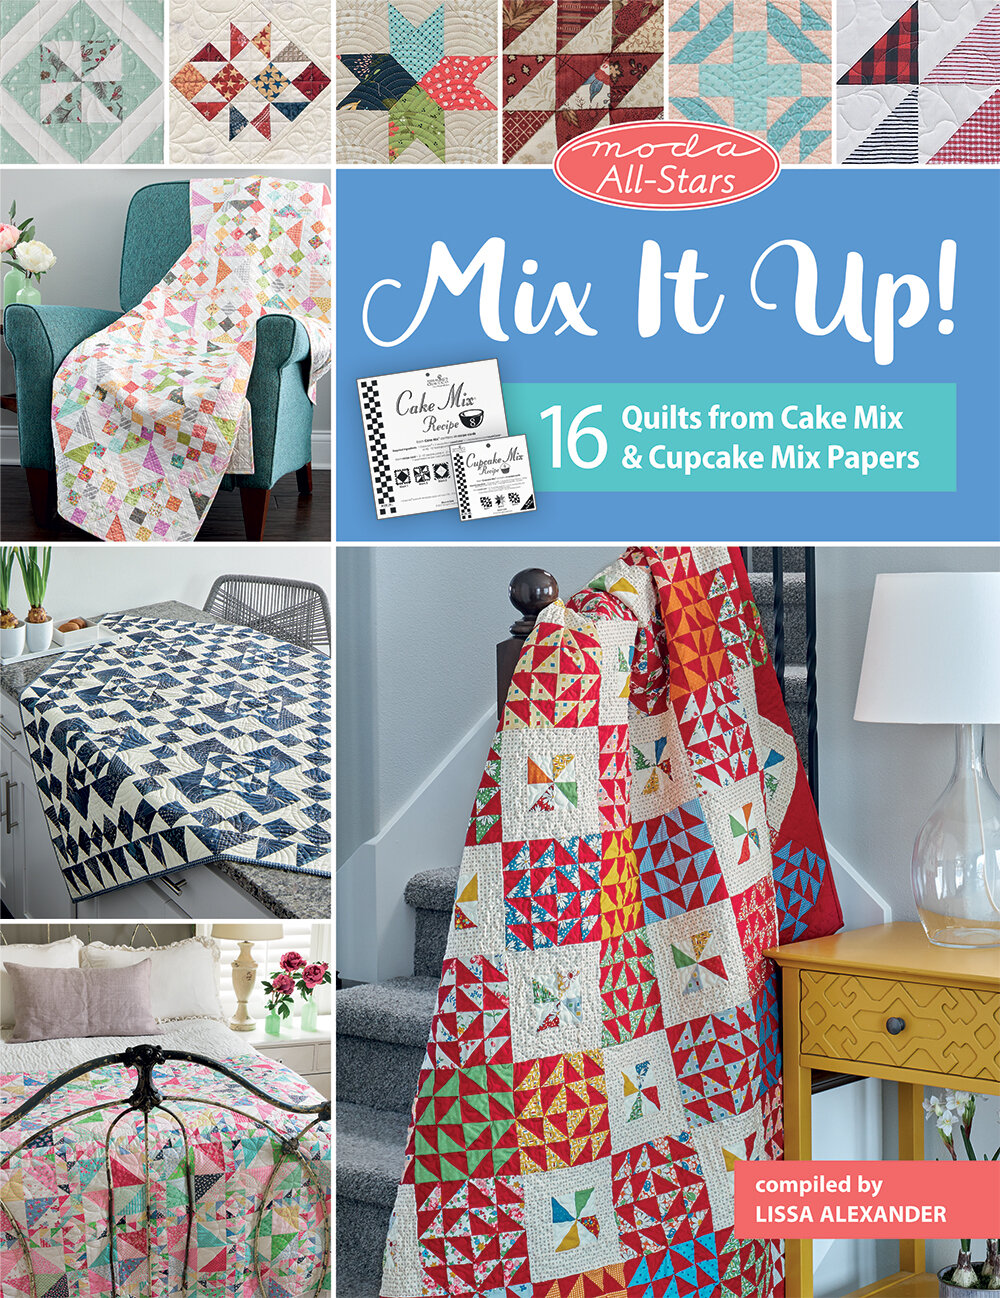 Martingale's new book, Moda All Stars: Mix It Up! includes a quilt sewn by Brigitte Heitland of Zen Chic and created with one of its sixteen Cake Mix recipes.